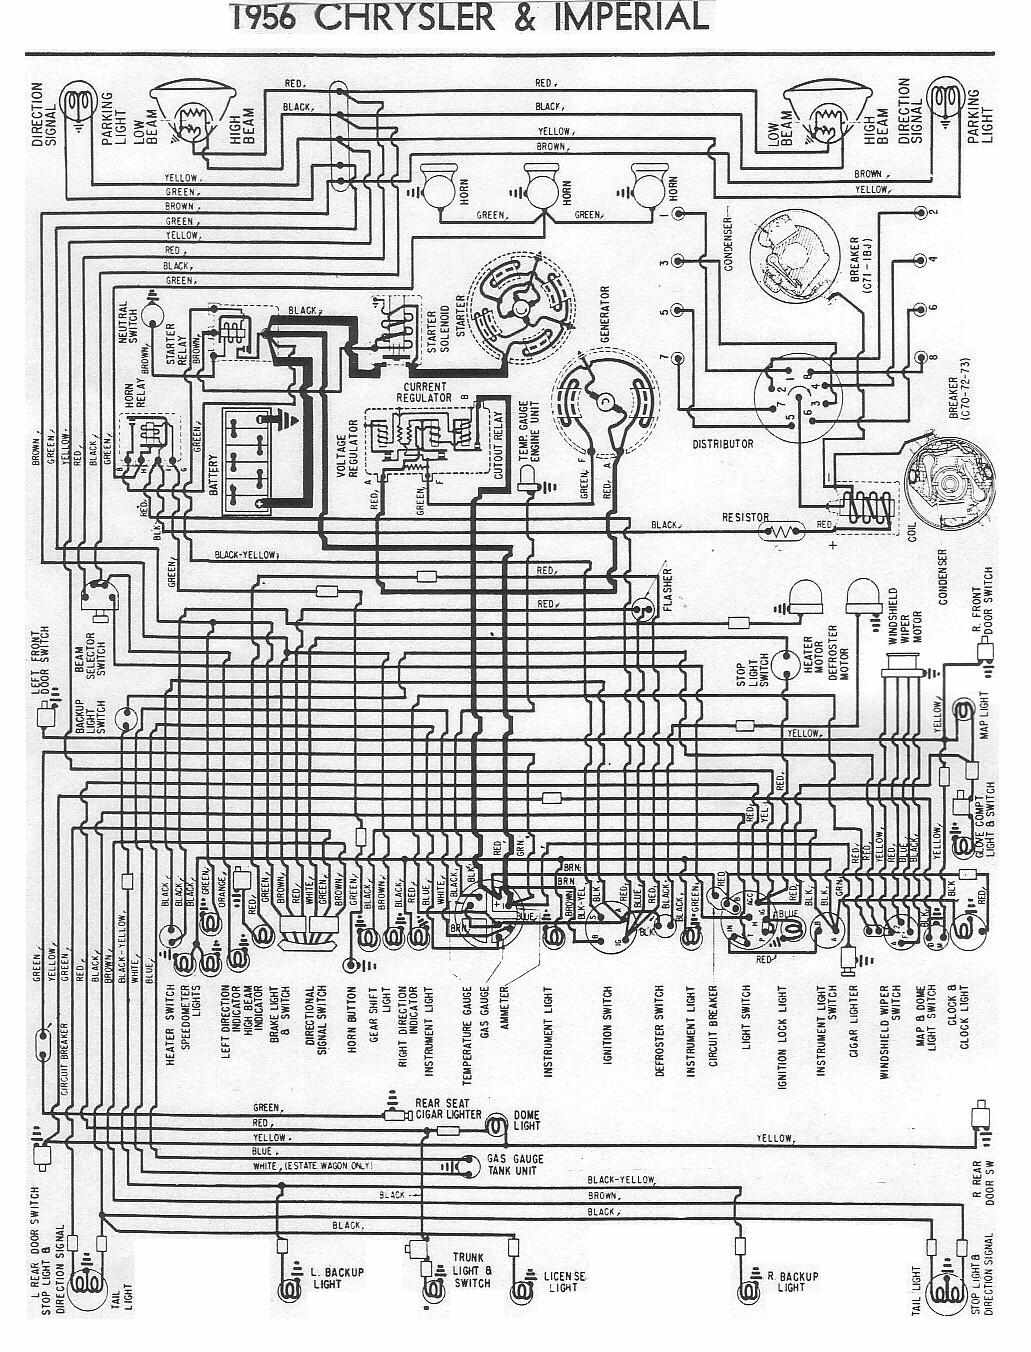 1967 ford f100 wiring harness electrical wiring diagrams of 1956 chrysler and imperial  [ 1031 x 1352 Pixel ]